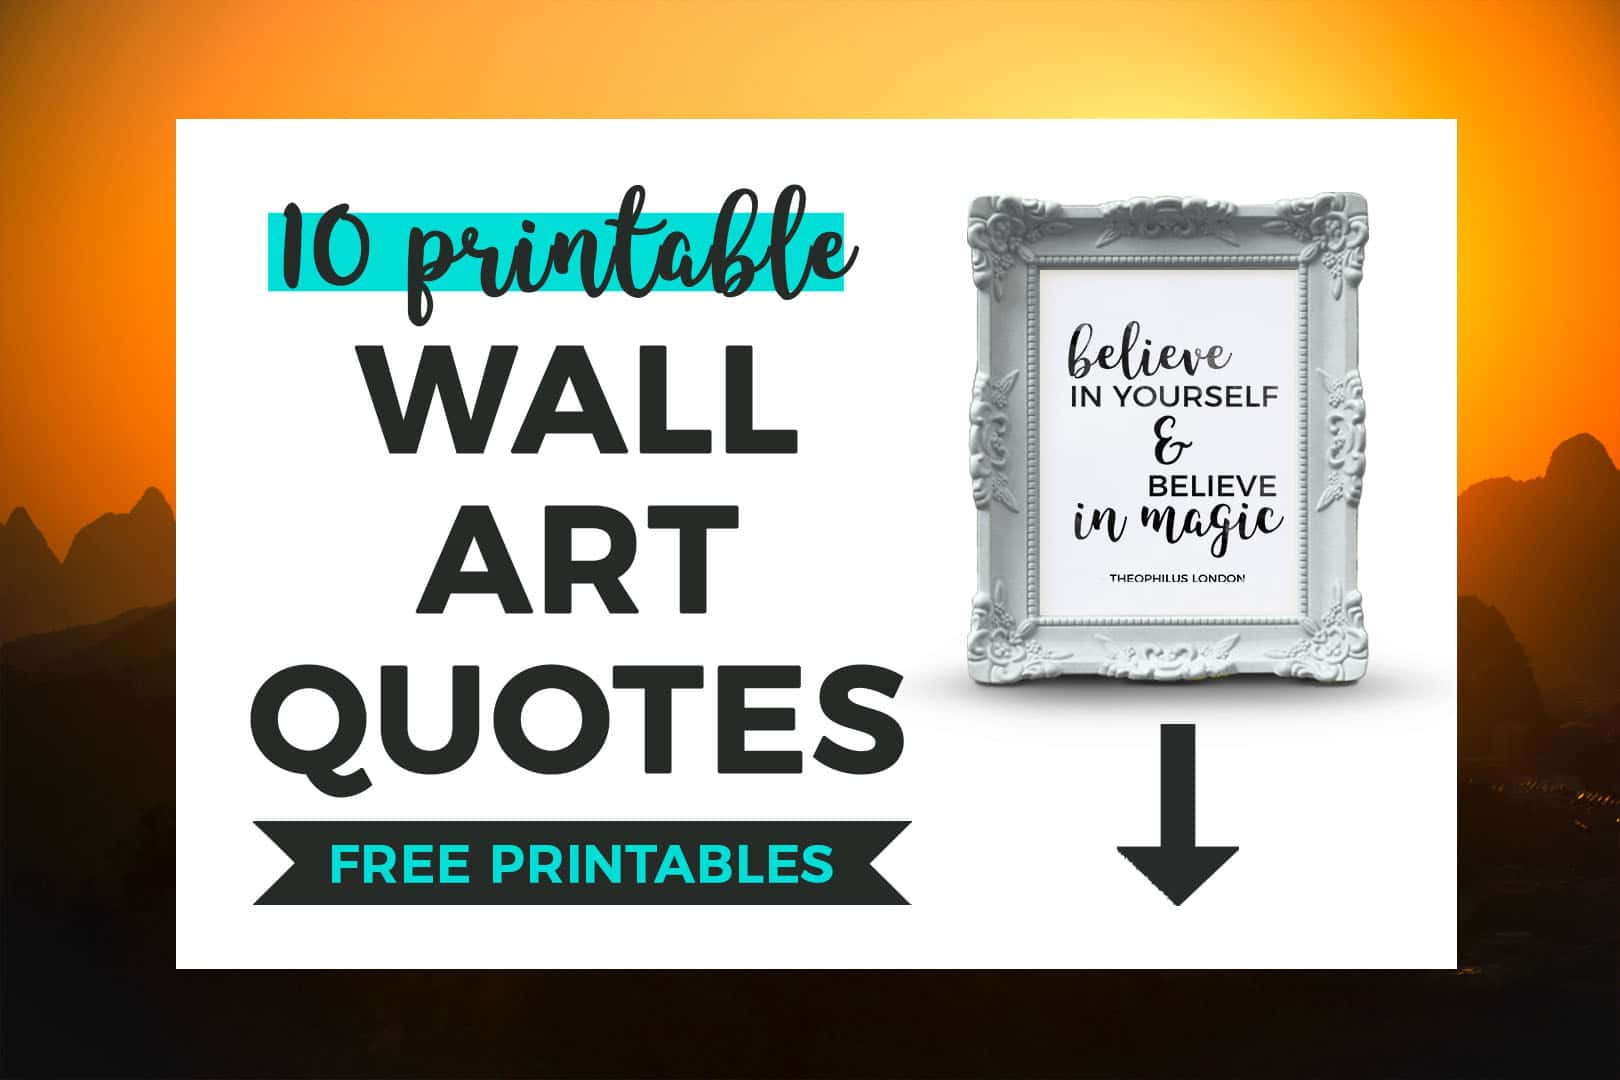 picture about Free Quote Printable referred to as 10 Printable Black and White Rates that Motivate Its All